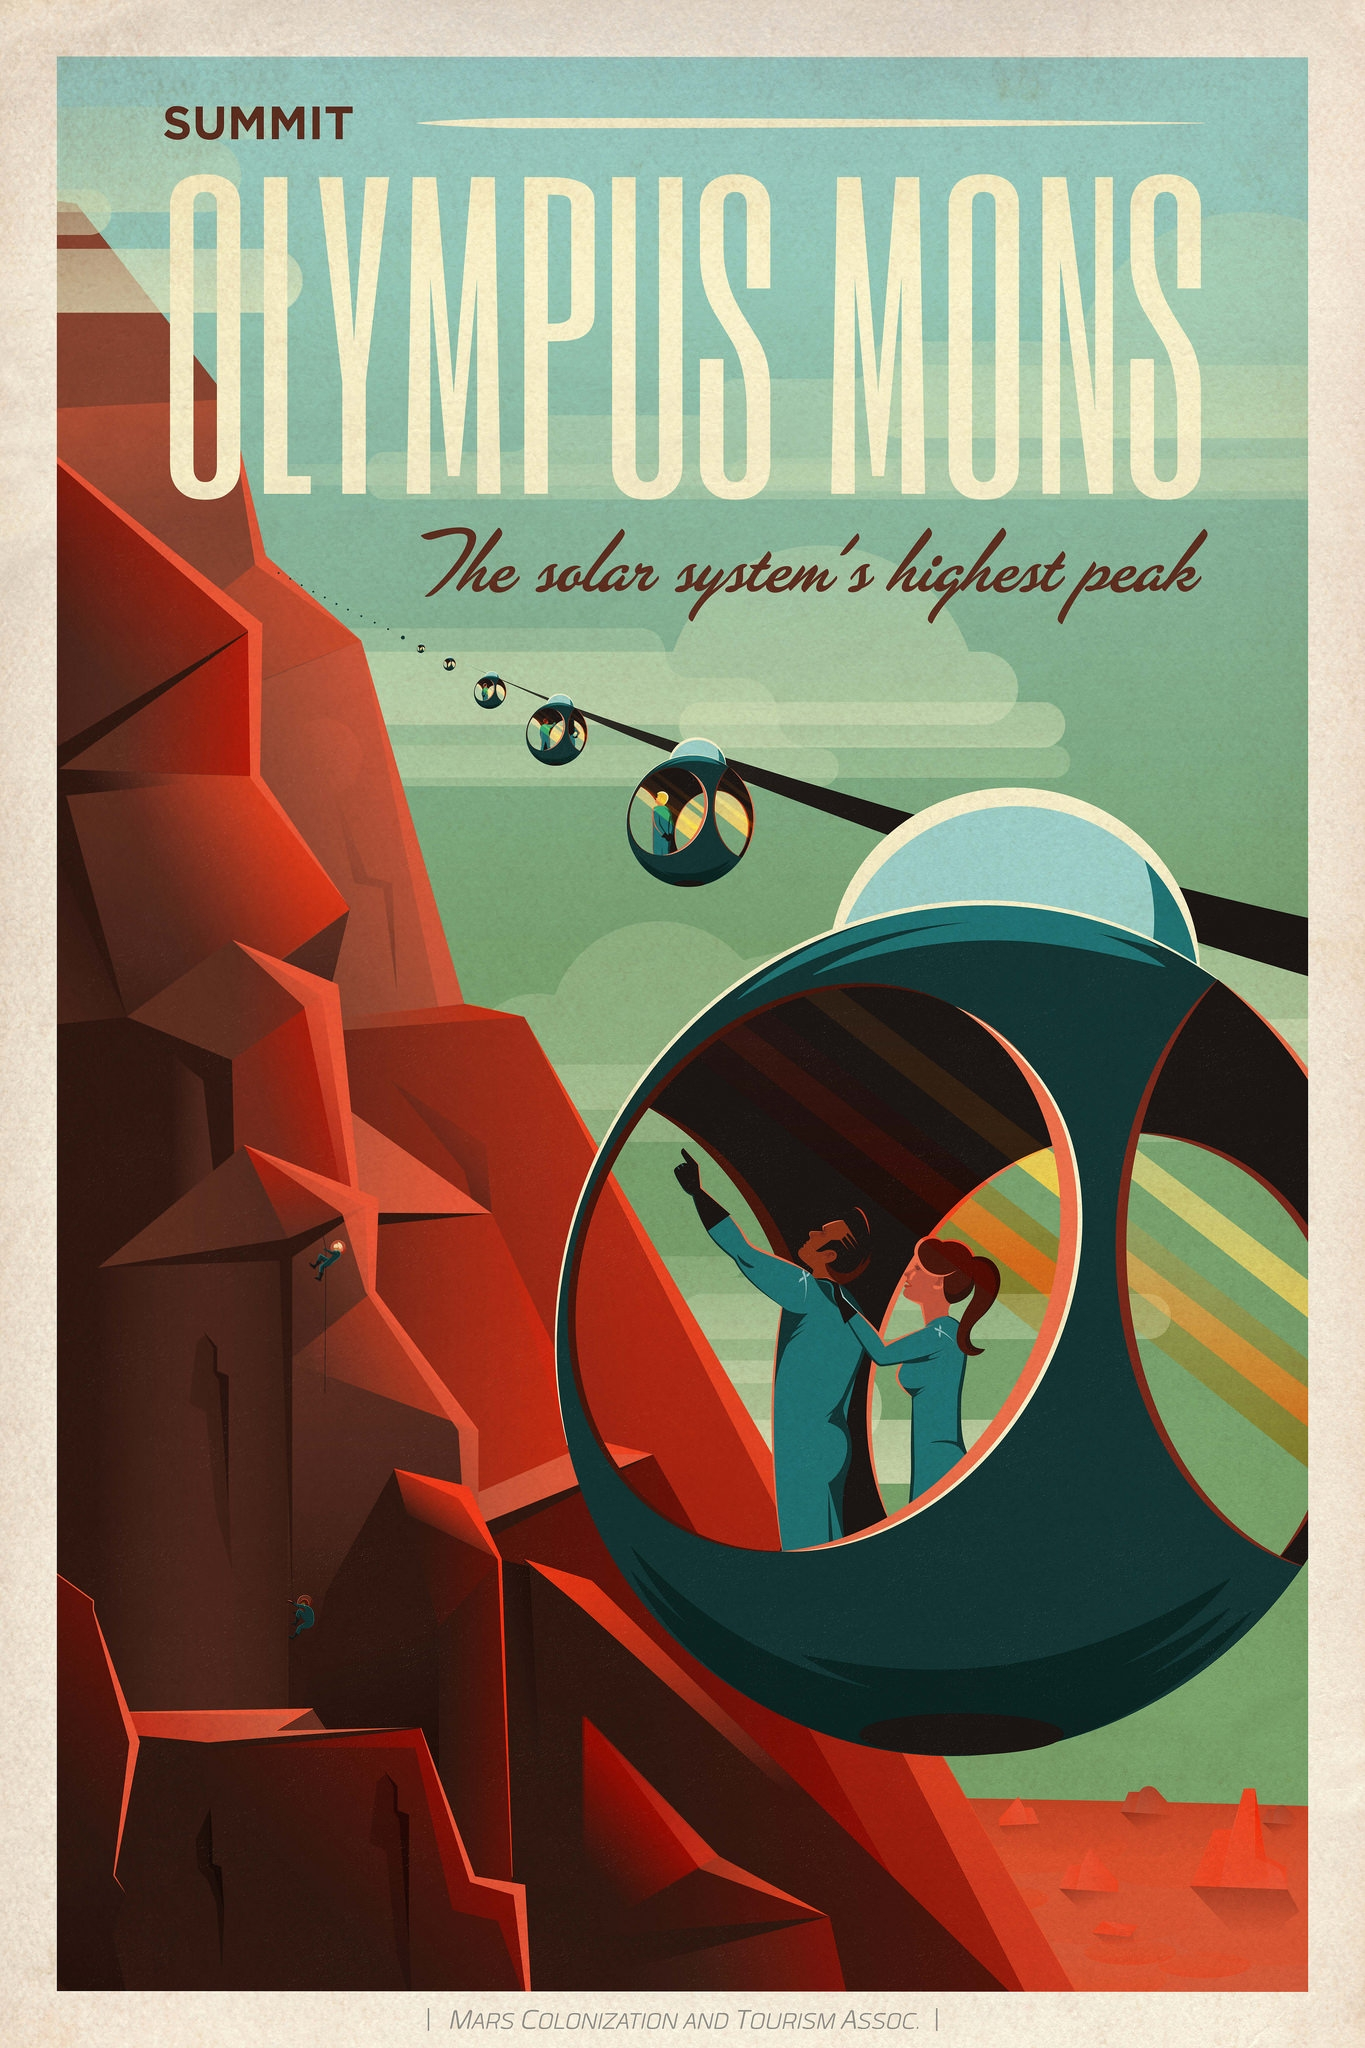 SpaceX is inviting us to Mars with some retro travel posters